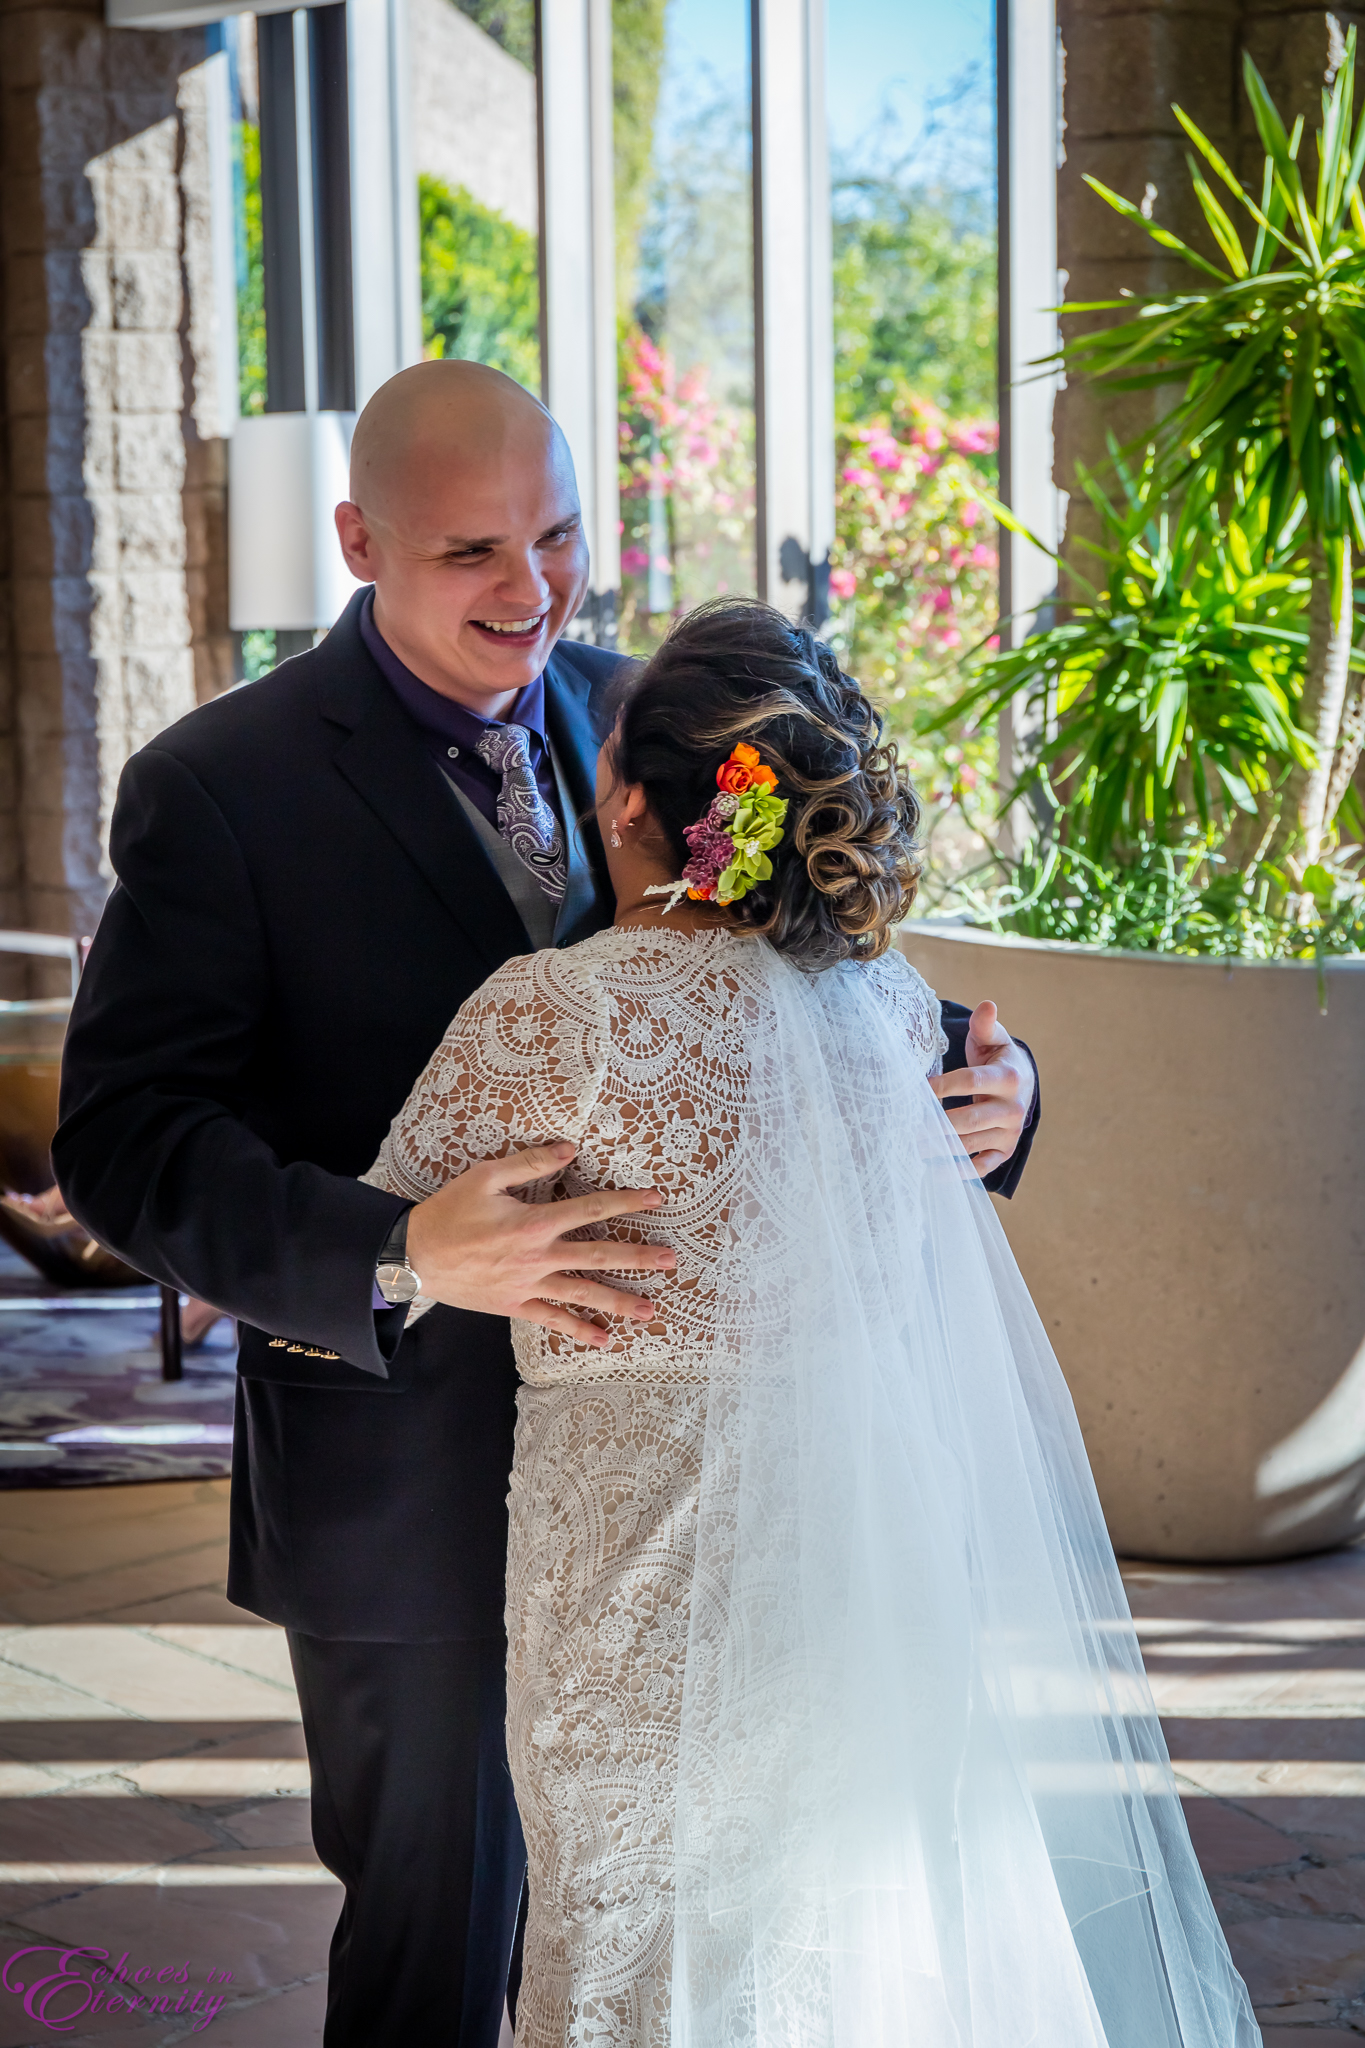 The Wedding of Zuri and George Tucson Arizona Wedding Photographer Lowes Ventana Canyon 06.jpg